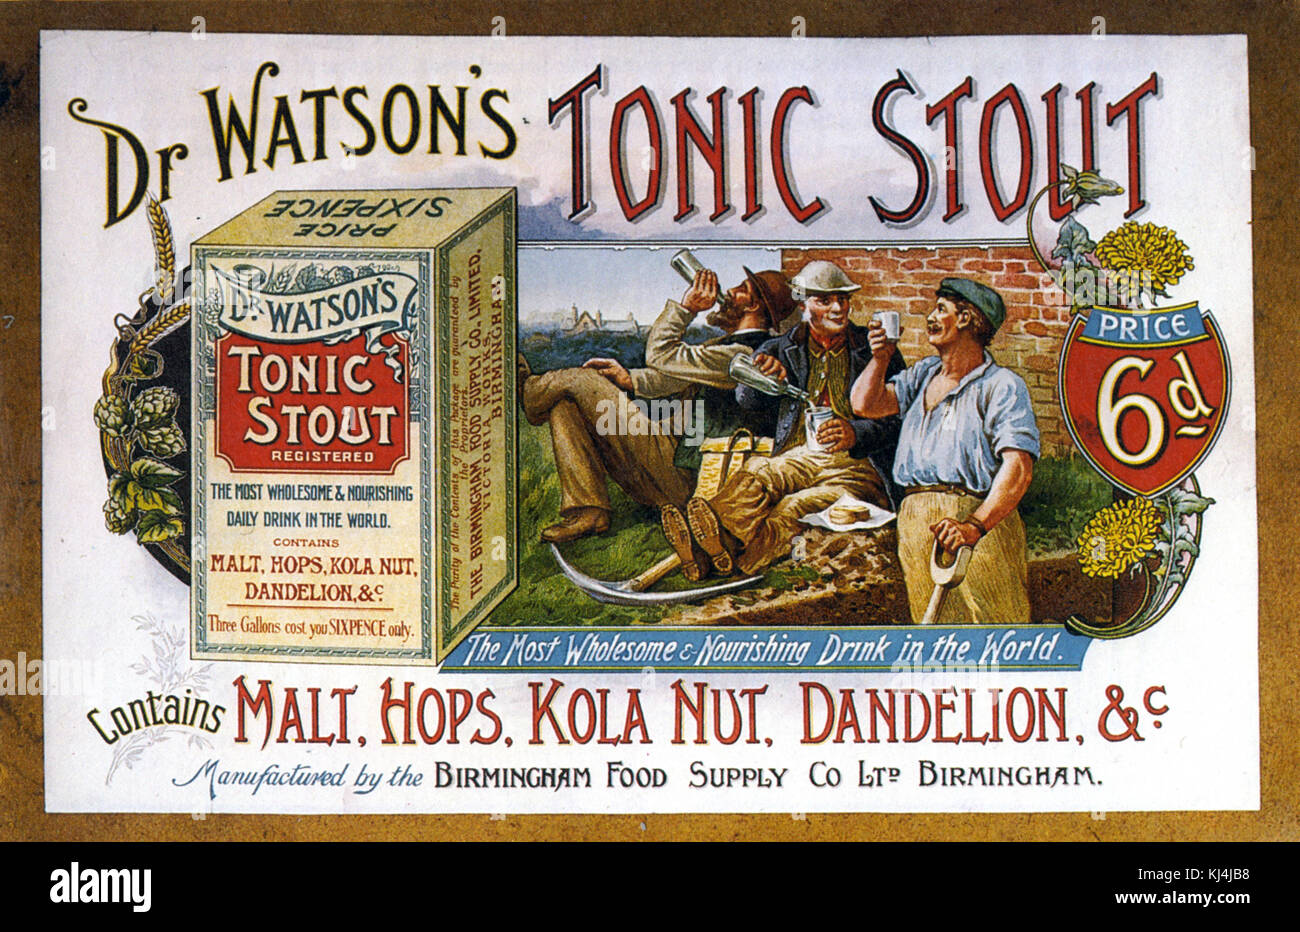 DR WATSON'S TONIC STOUT showcard about 1905 - Stock Image